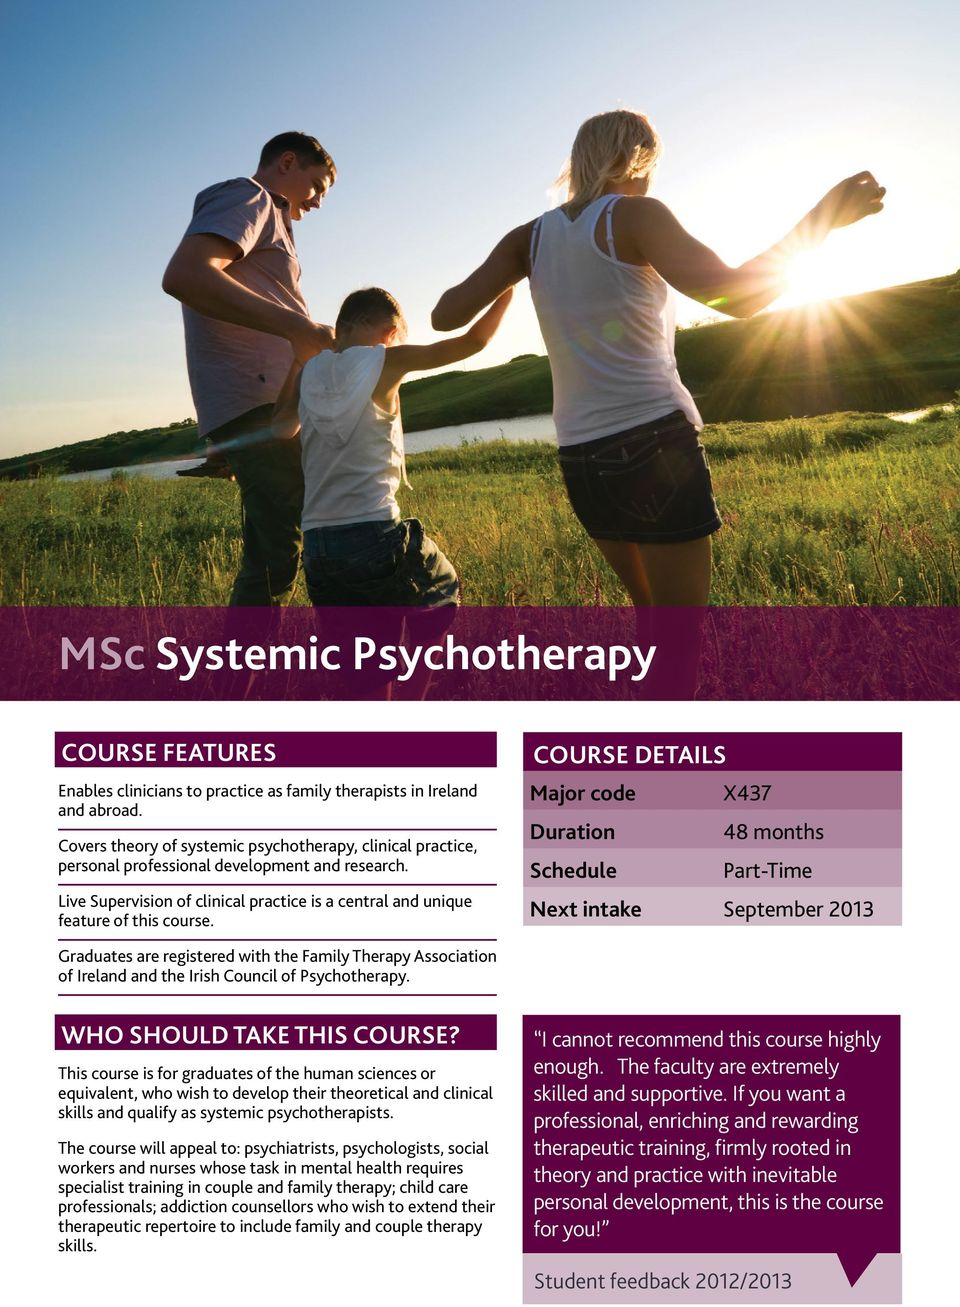 CouRSE DETAILS Major code X437 Duration 48 months Schedule Part-Time Next intake September 2013 Graduates are registered with the Family Therapy Association of Ireland and the Irish Council of